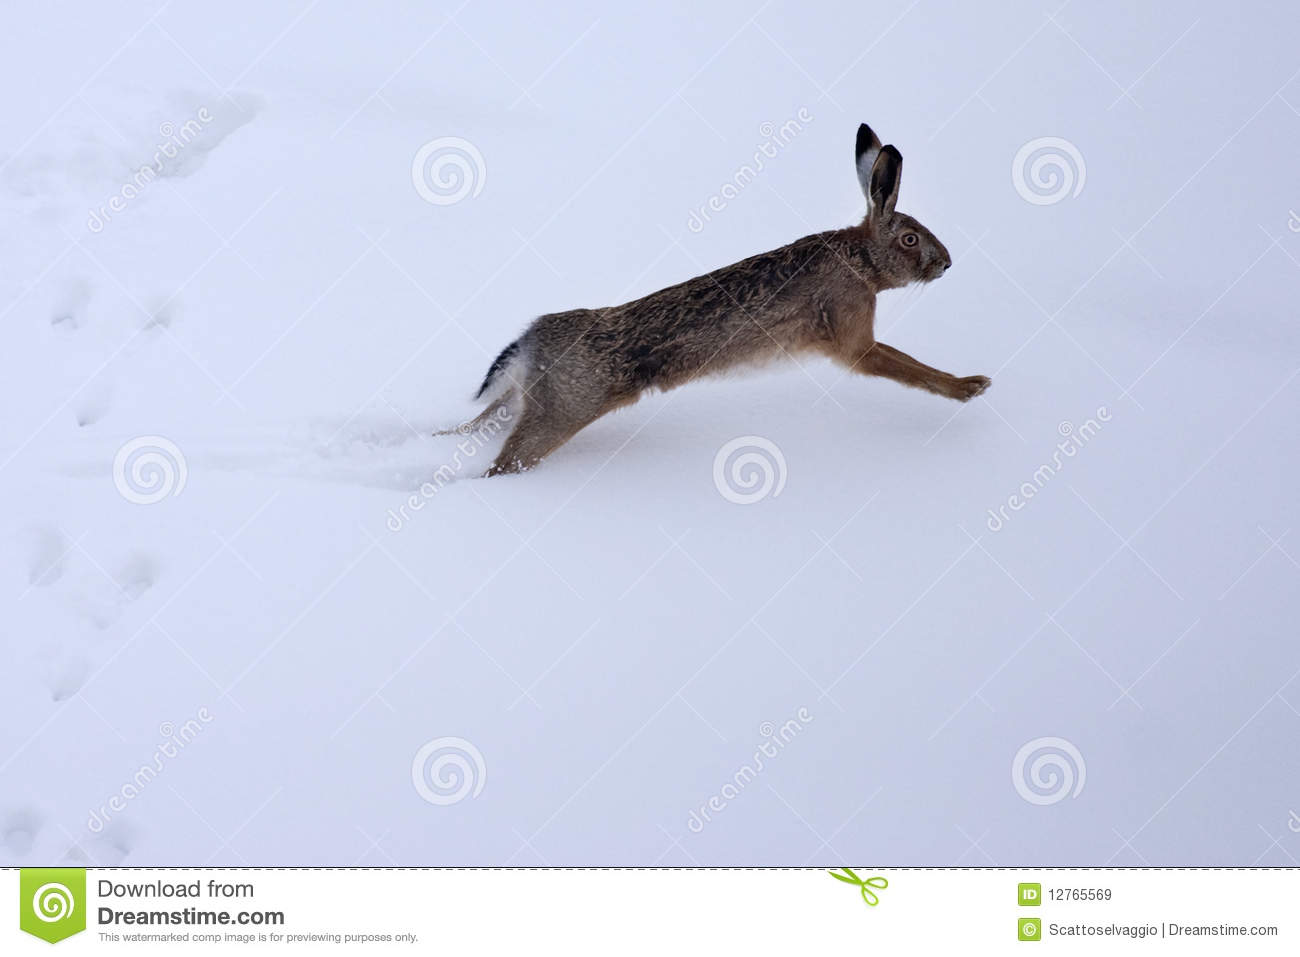 European hare (Lepus europaeus) in the snow. European or brown hare (lepus europaeus) running in the snow and leaving footprints.